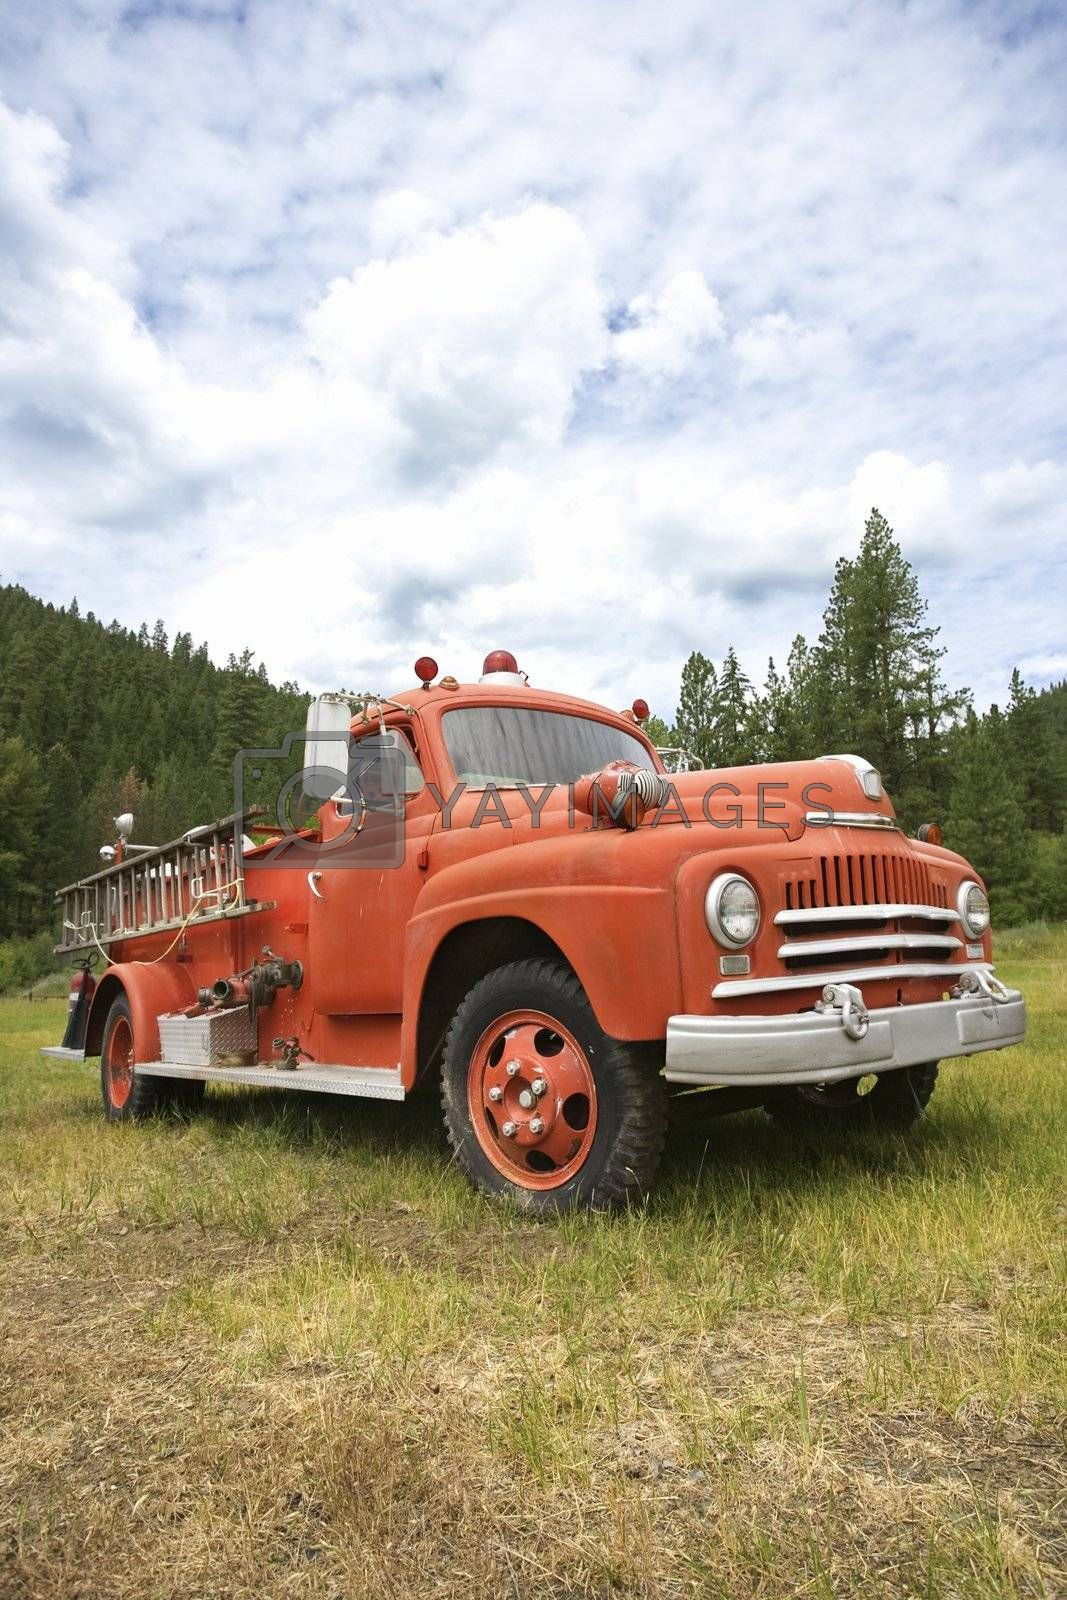 Low angle view of old fire truck in field.